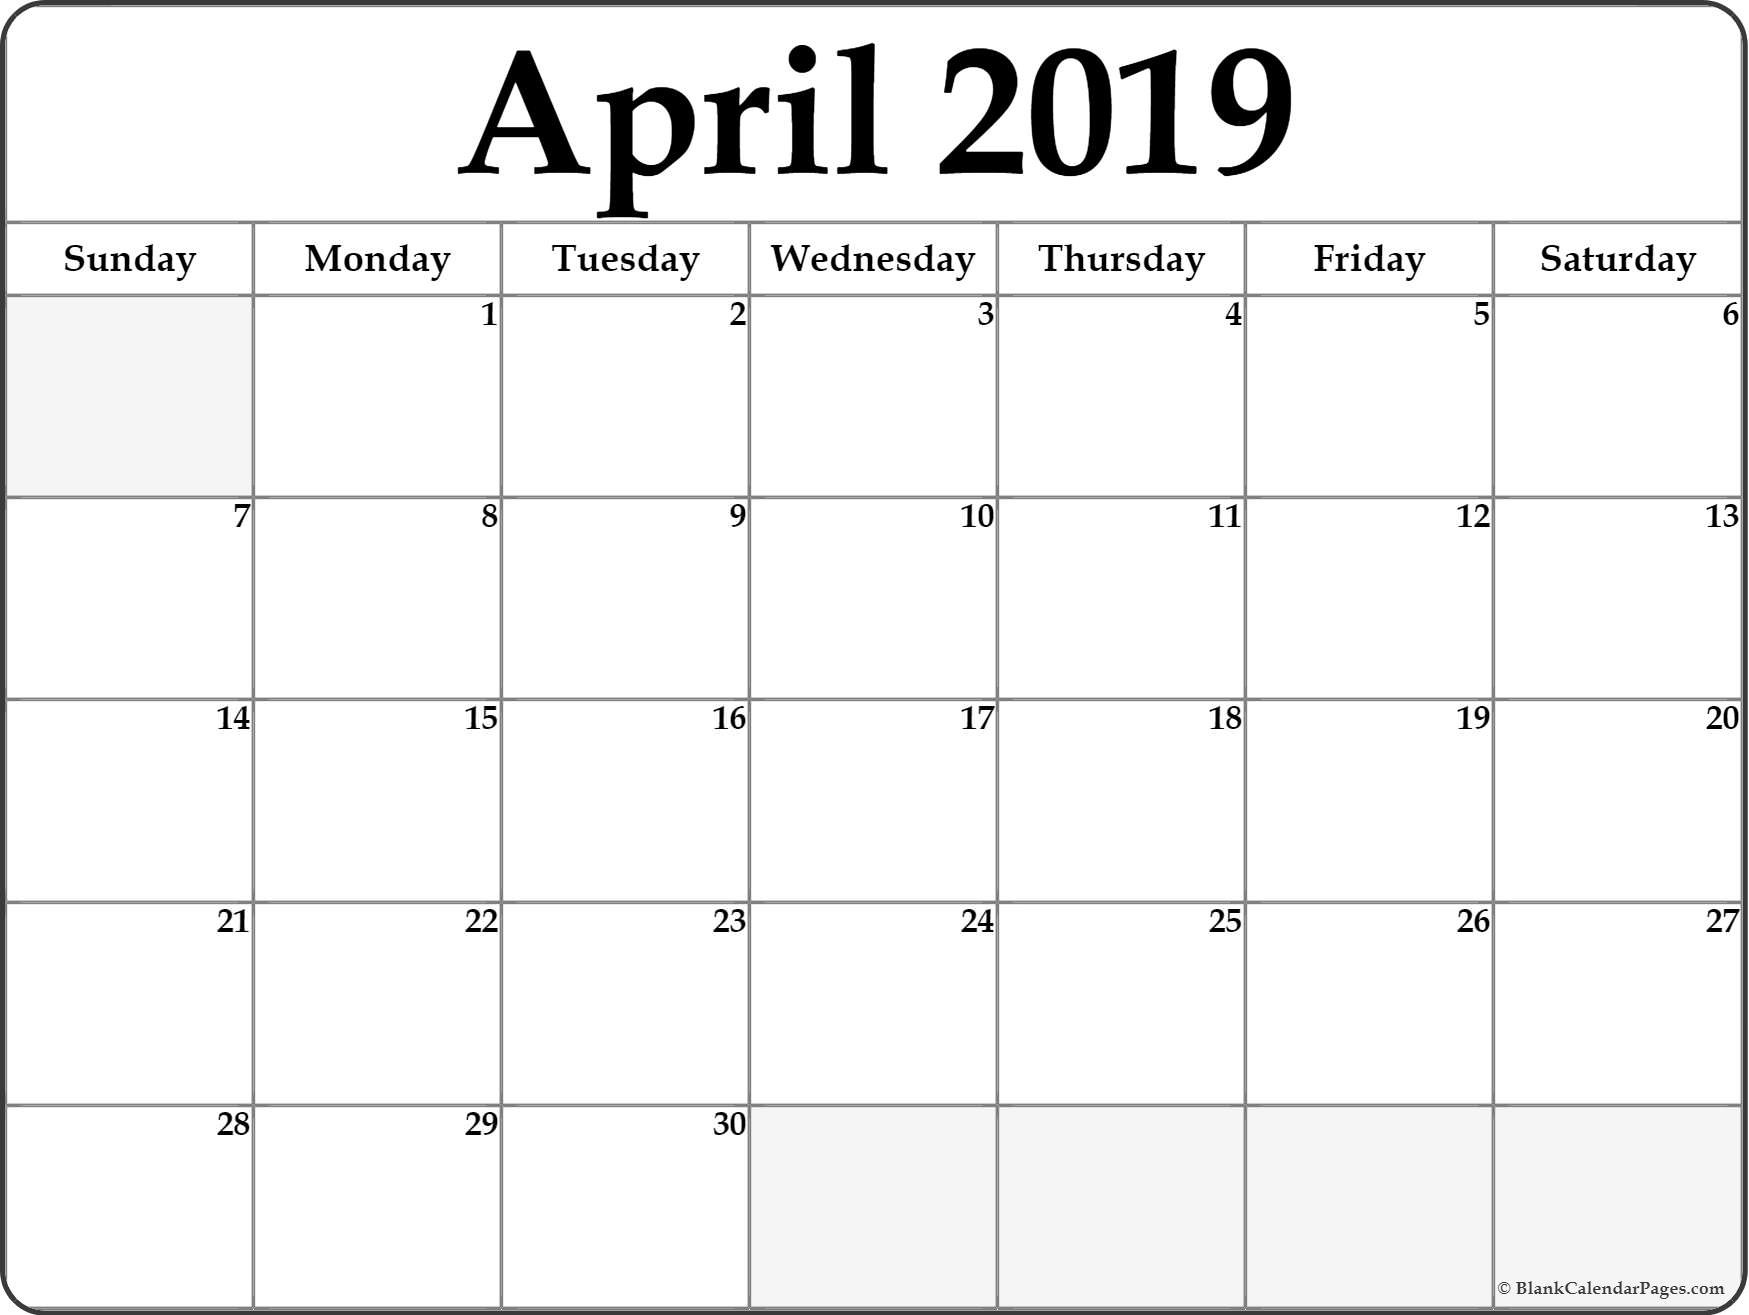 Printable Calendar April 2019 Landscape